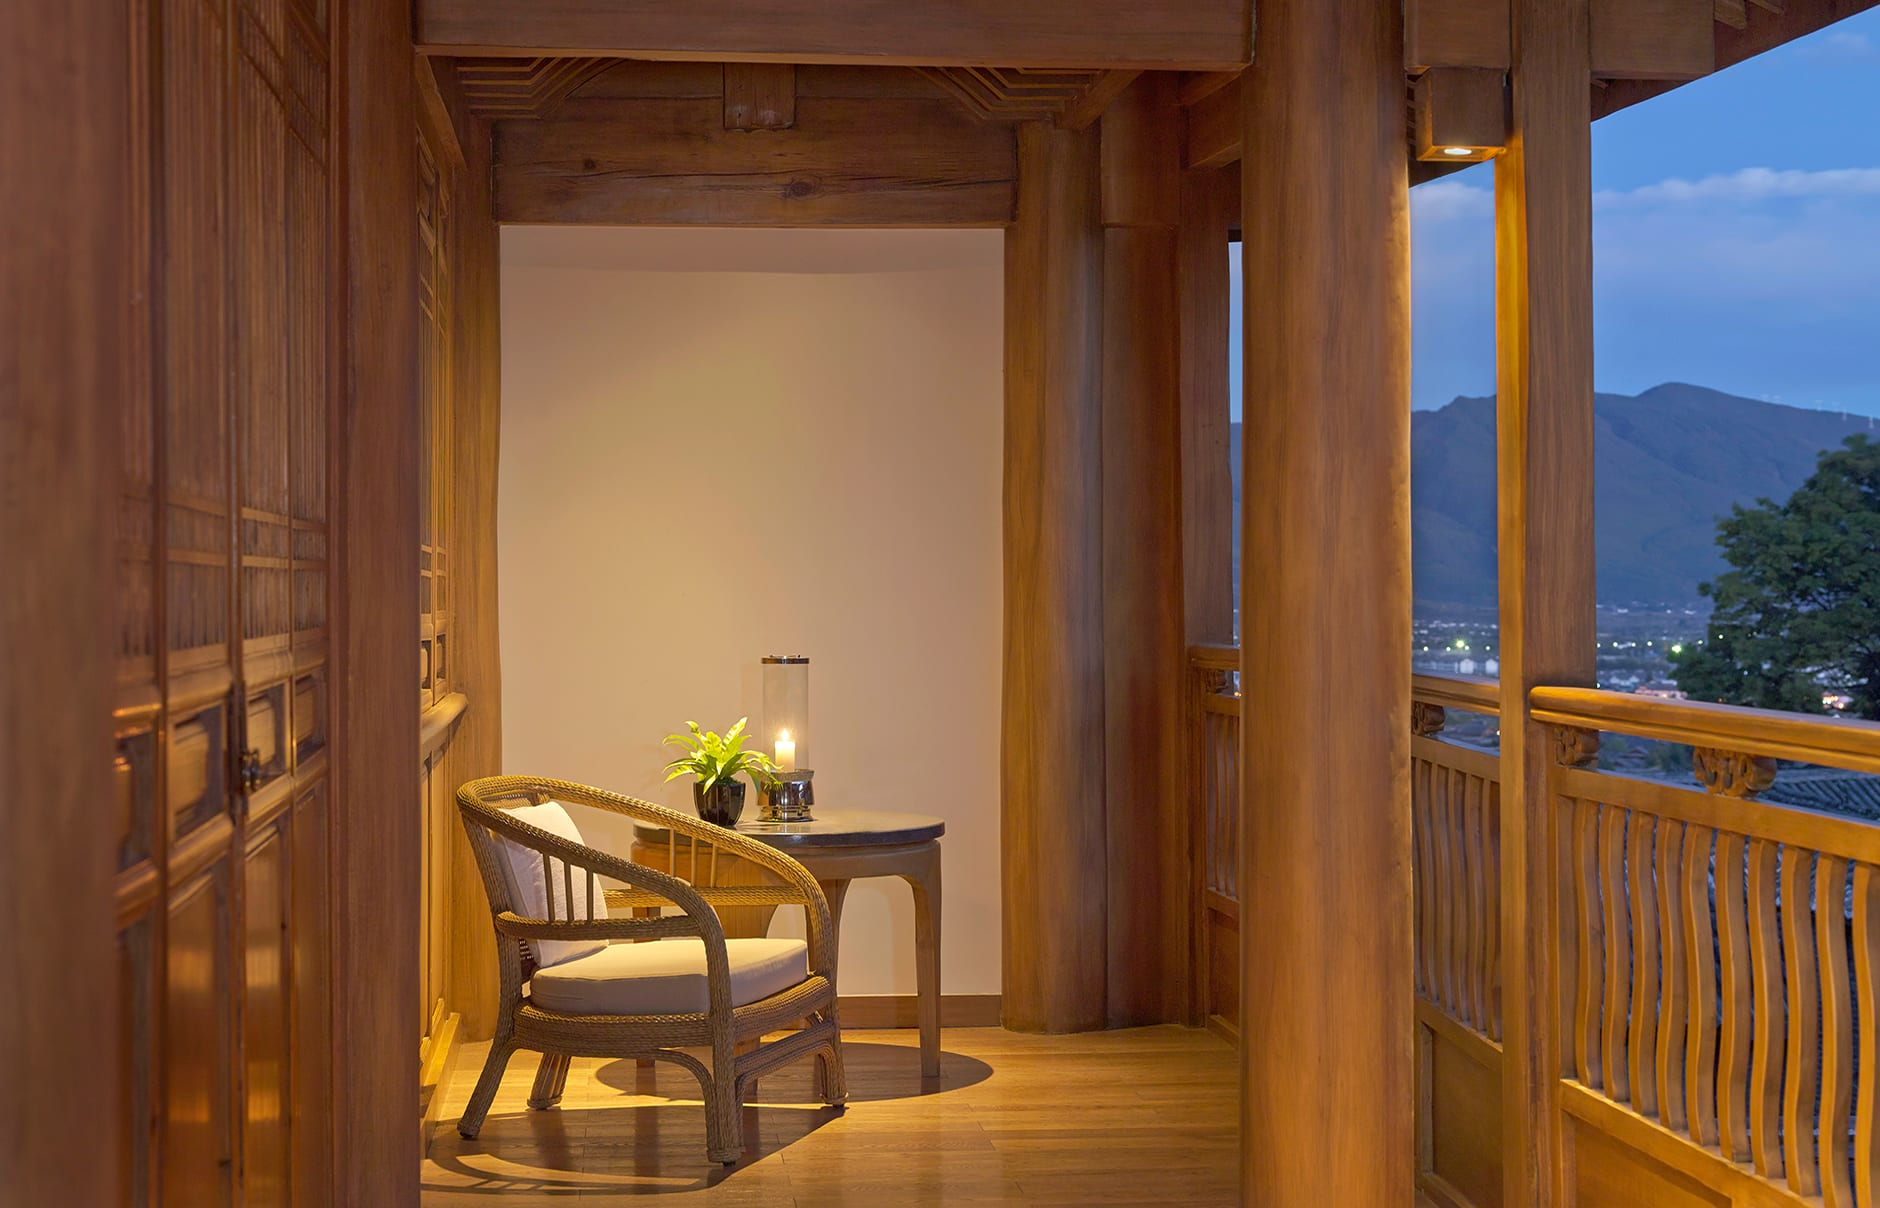 Amandayan - Suite Balcony. Amandayan, Lijiang, China. Luxury Hotel Review by TravelPlusStyle. Photo © Aman Resorts